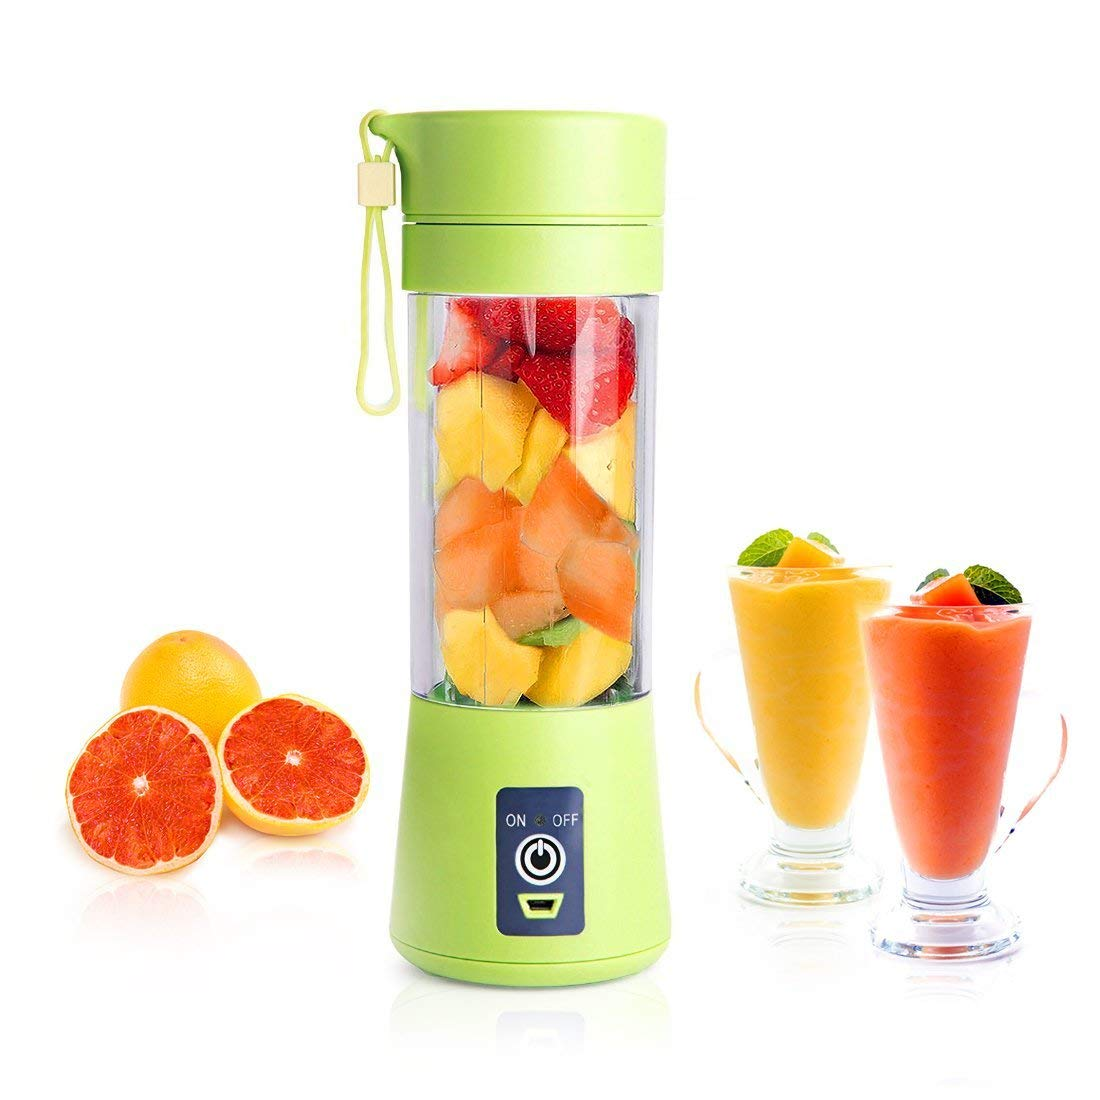 Portable blender Personal 6 Blades Juicer Cup Household Fruit Mixer, With Magnetic Secure Switch, USB Charger Cable 380ML(Green)